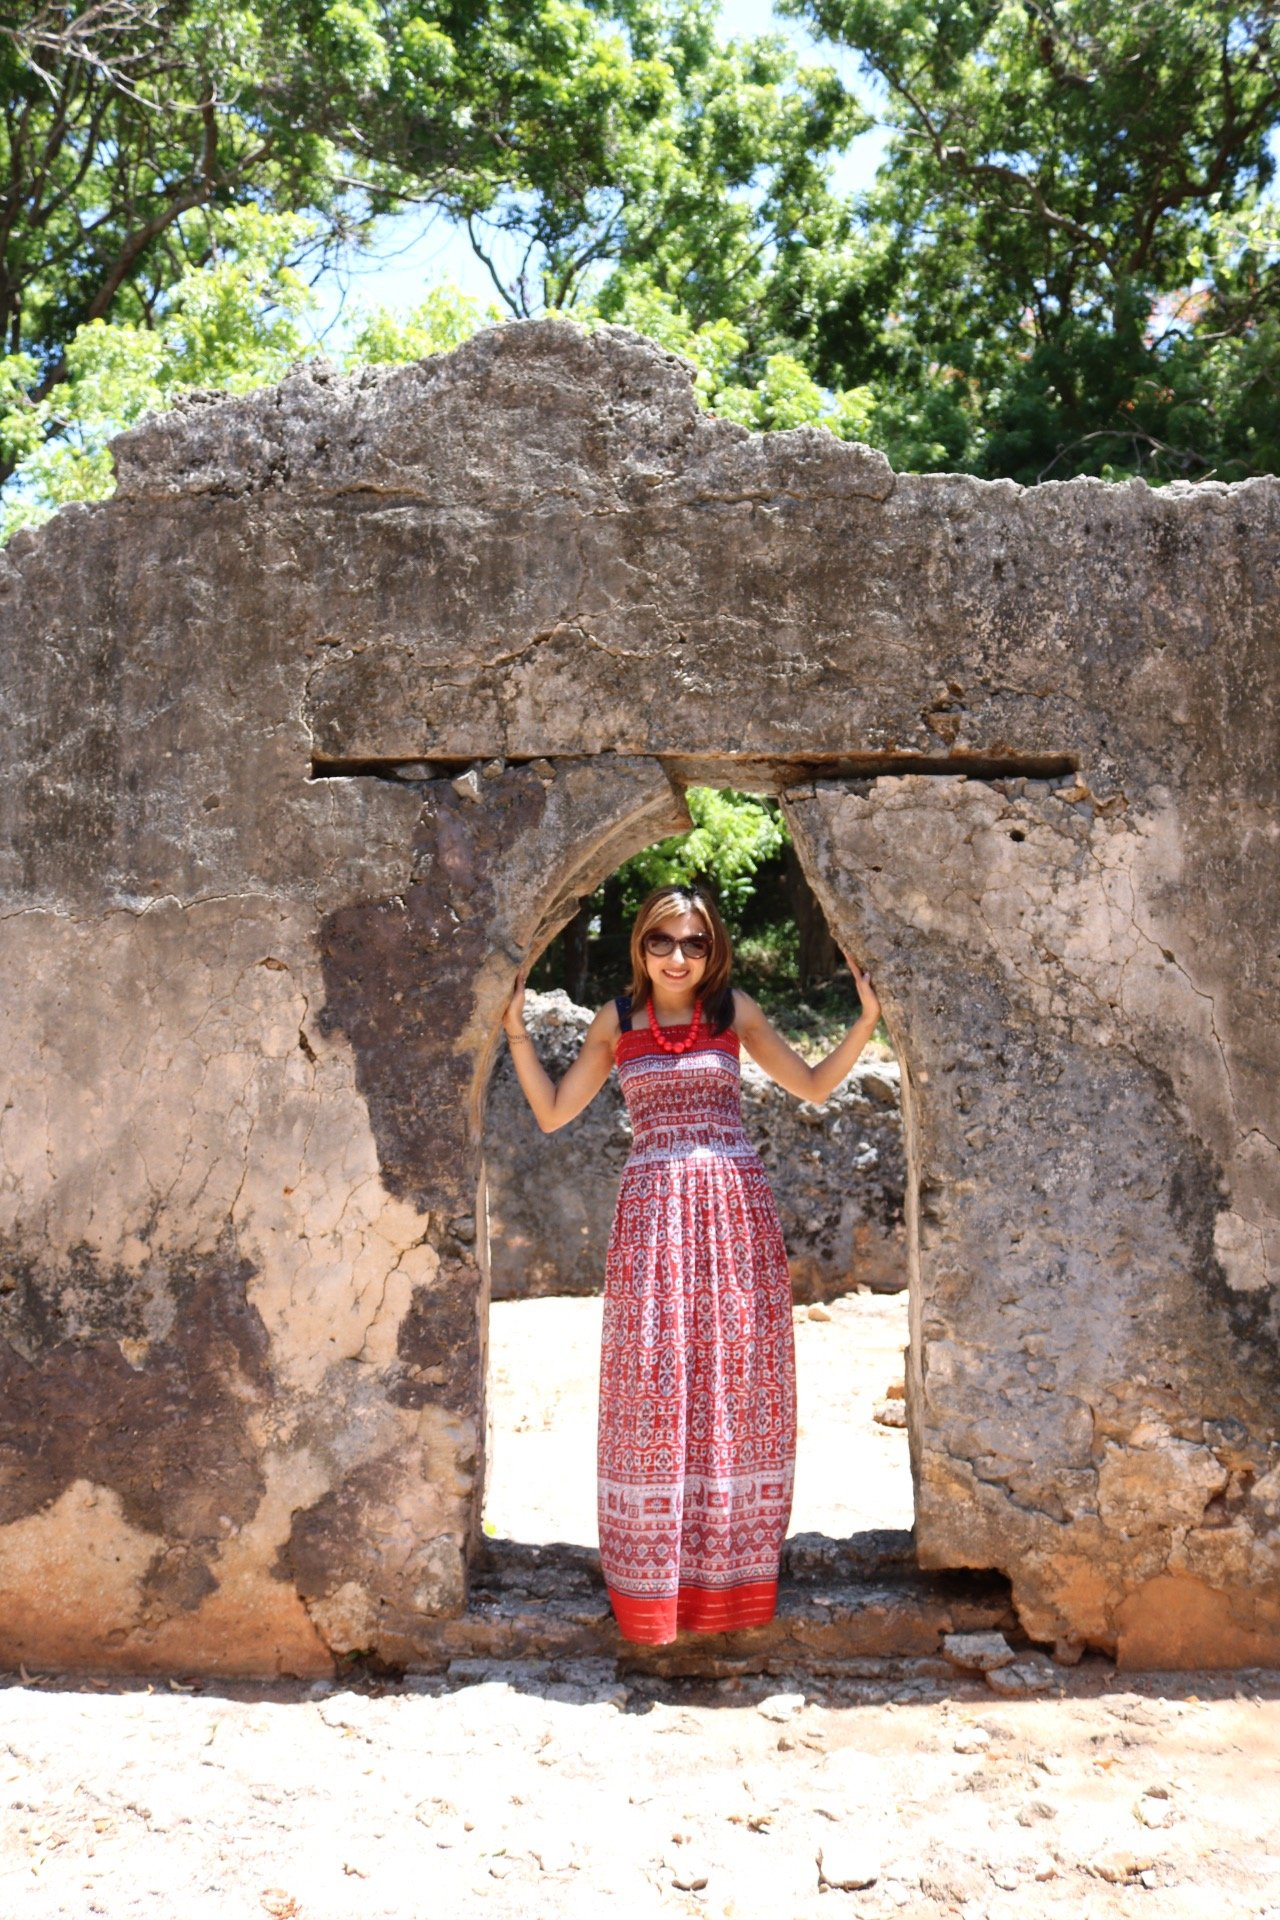 Some historical nuggets about my first home, Mombasa